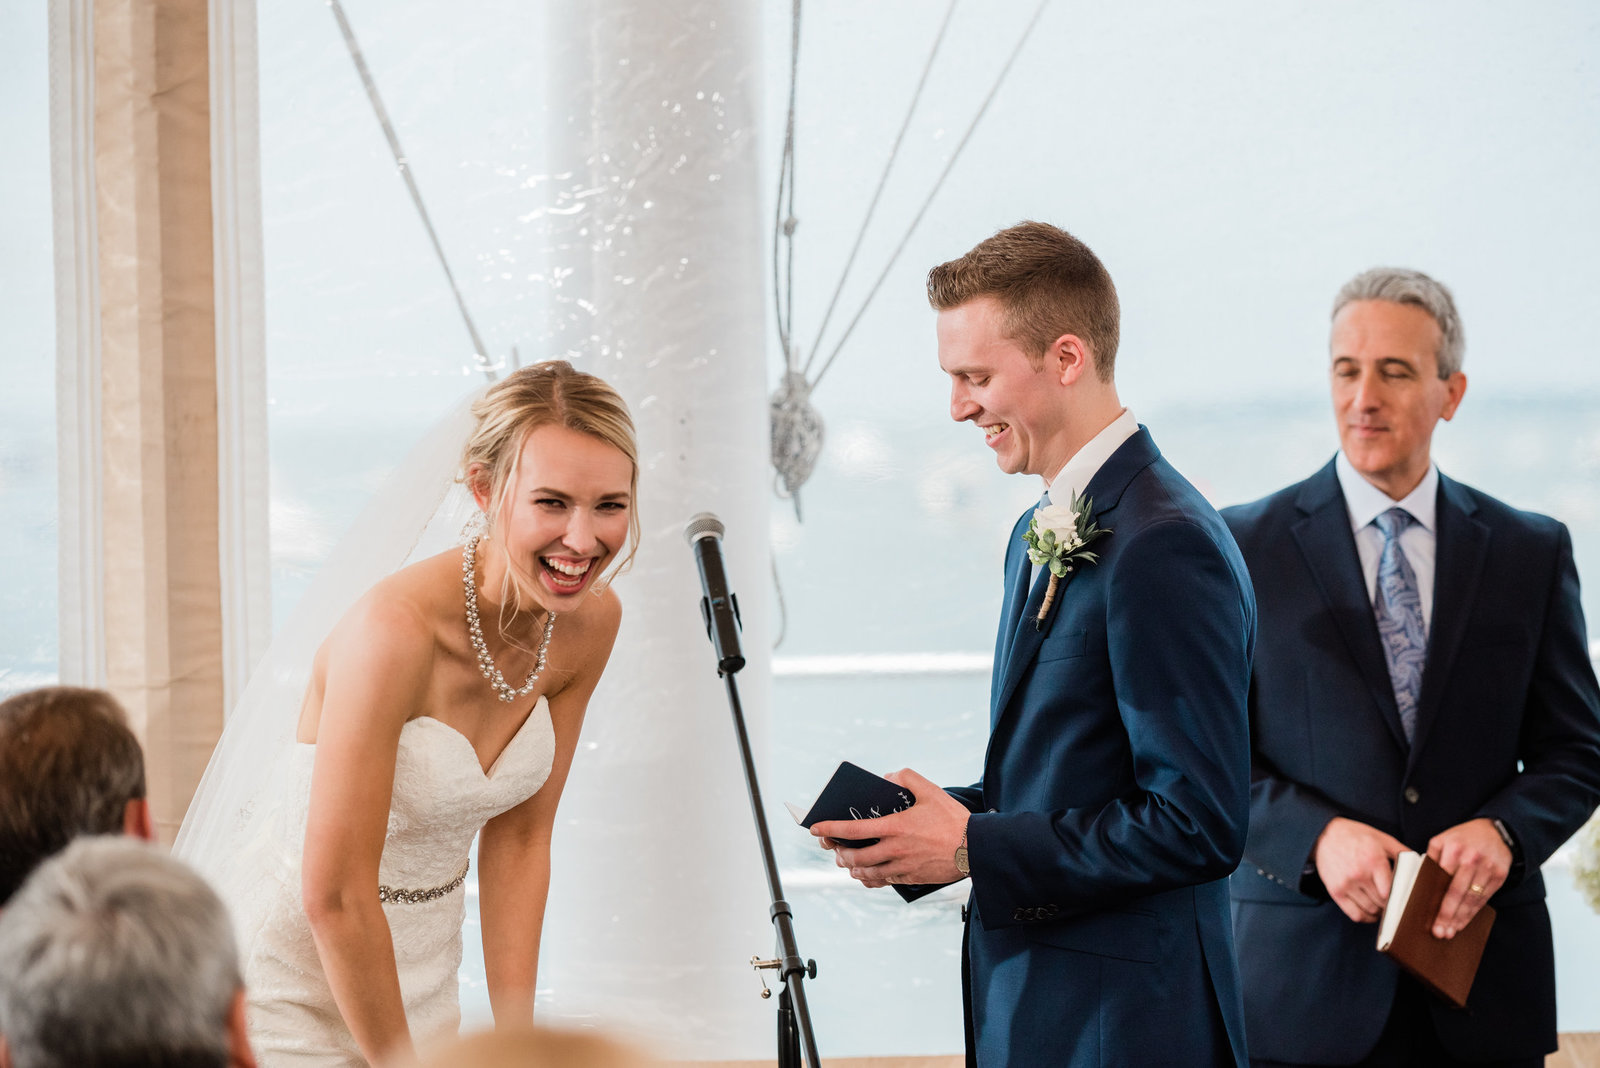 A couple reads their vows during their ceremony at a Duxbury Bay Maritime School wedding